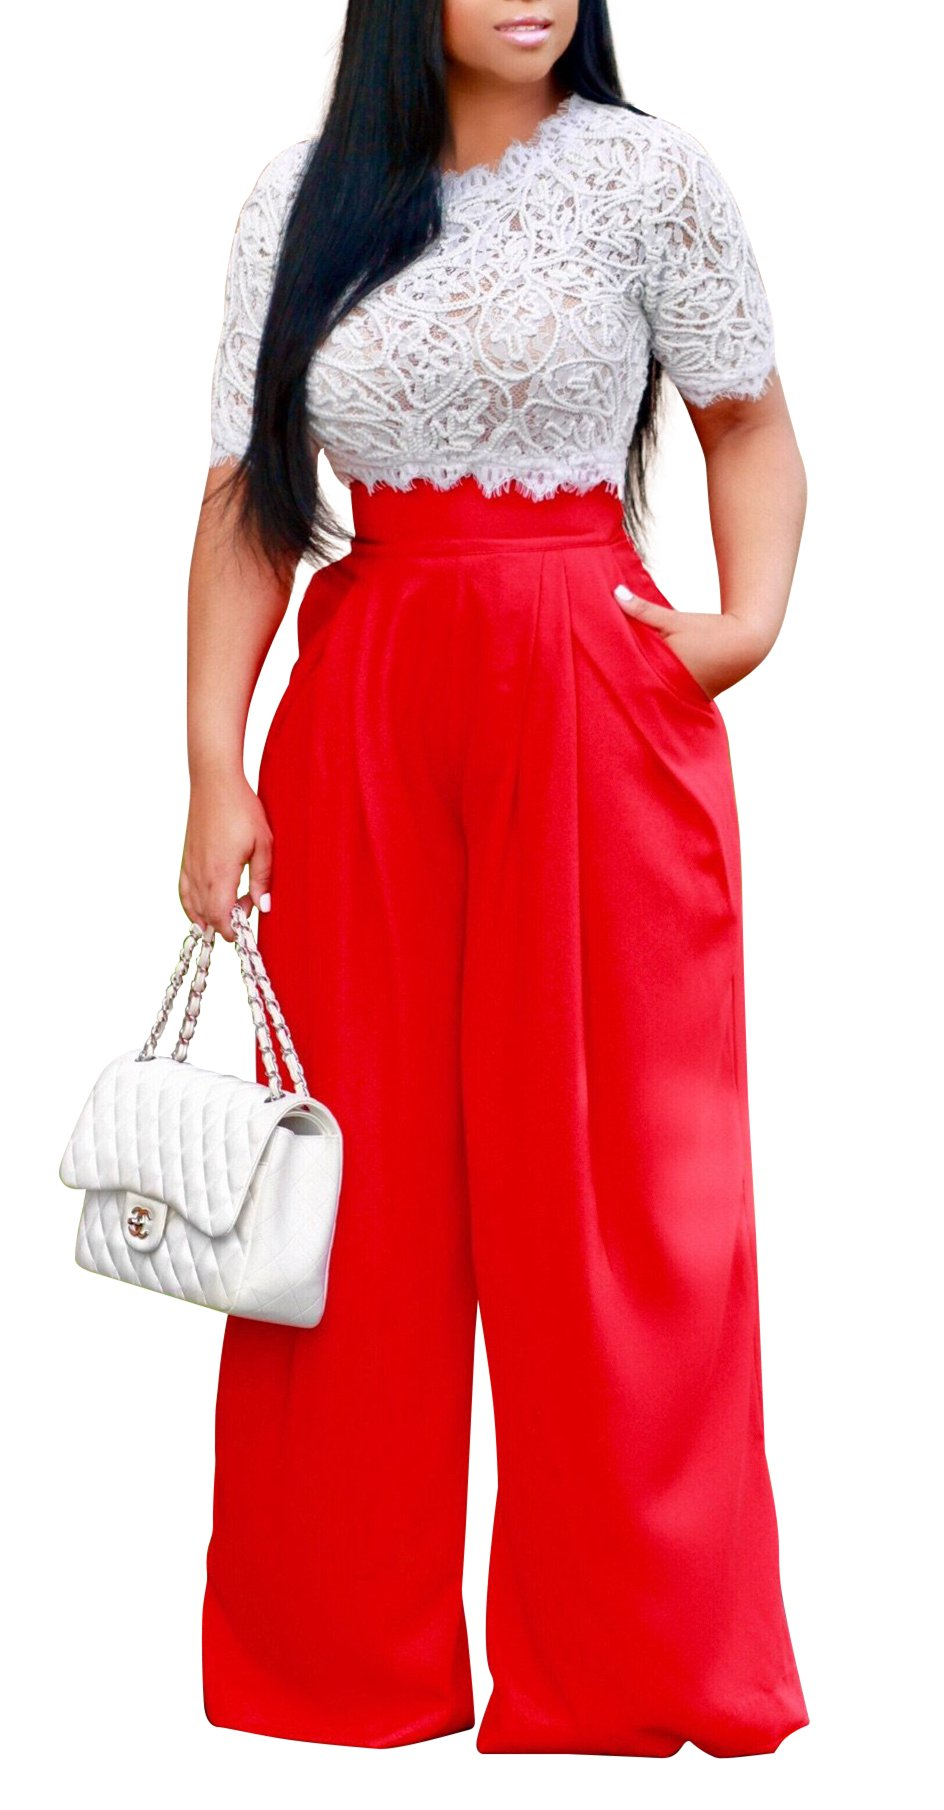 Women's Sexy 2 Piece Outfits Mesh See Through Crochet Lace Crop Top with High Waist Wide Leg Long Palazzo Pants Set (Medium, Red)